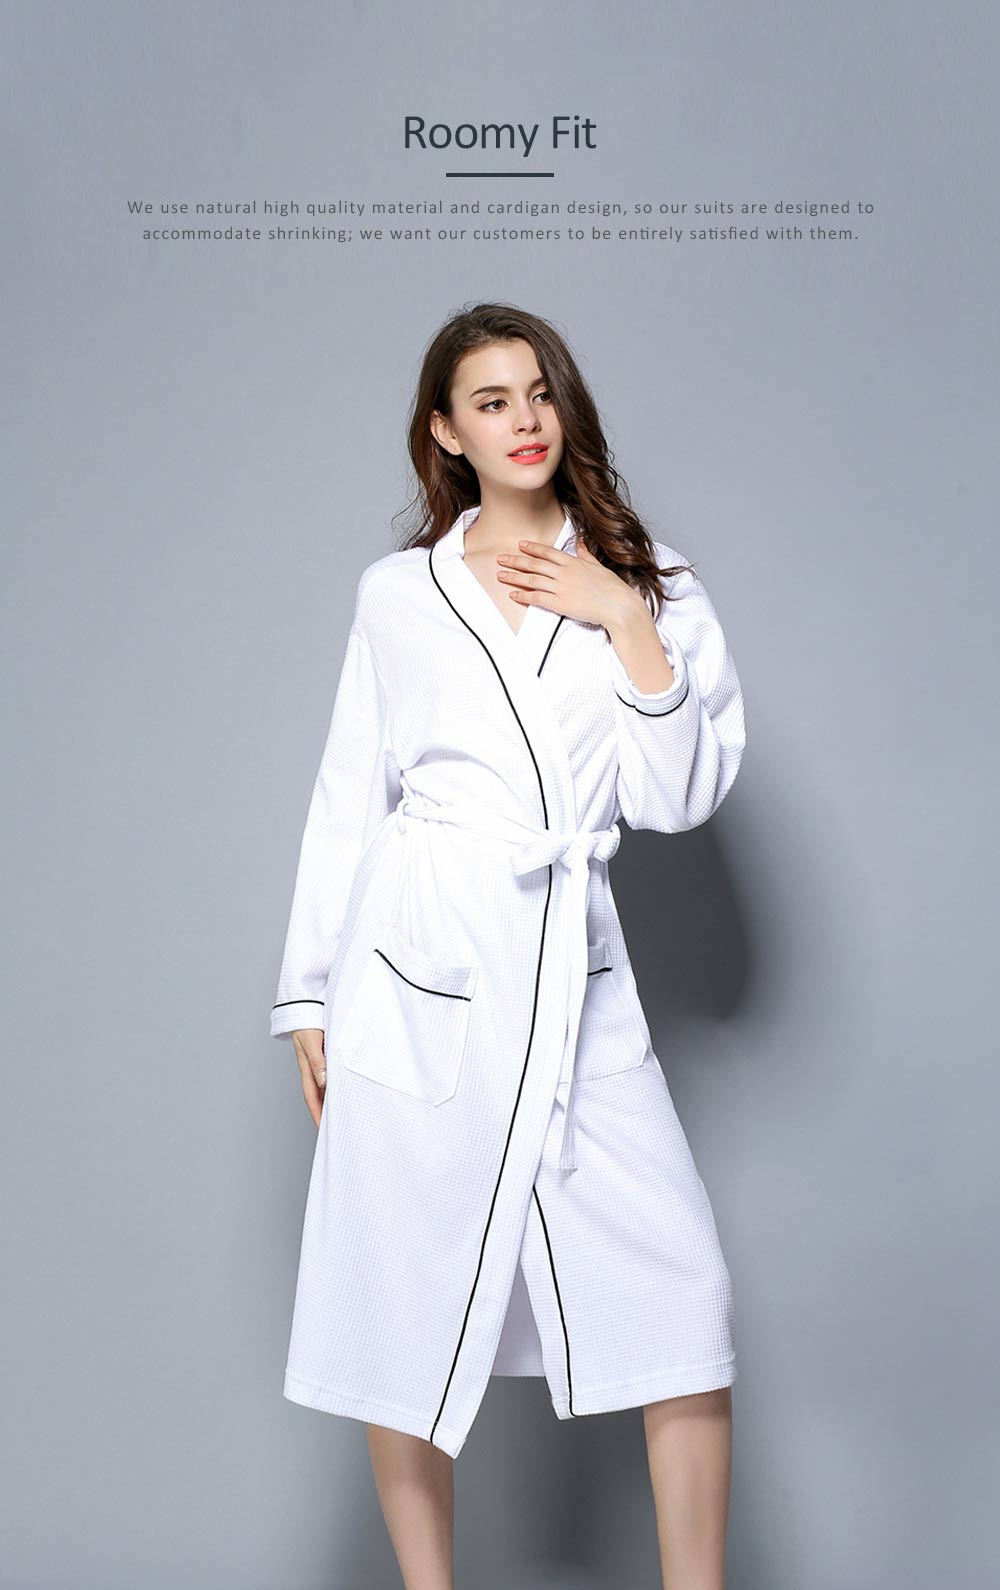 All-cotton Couple's Night Gown, Skin-friendly Delicate Embroidered Bathrobe, Sweat Sauna Towel for Beauty Salon and Spa Hotel 4